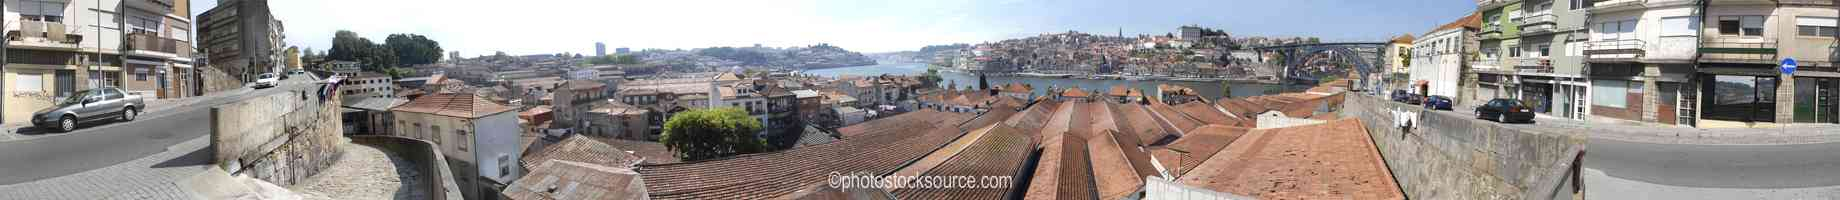 Photo of Oporto From South Bank